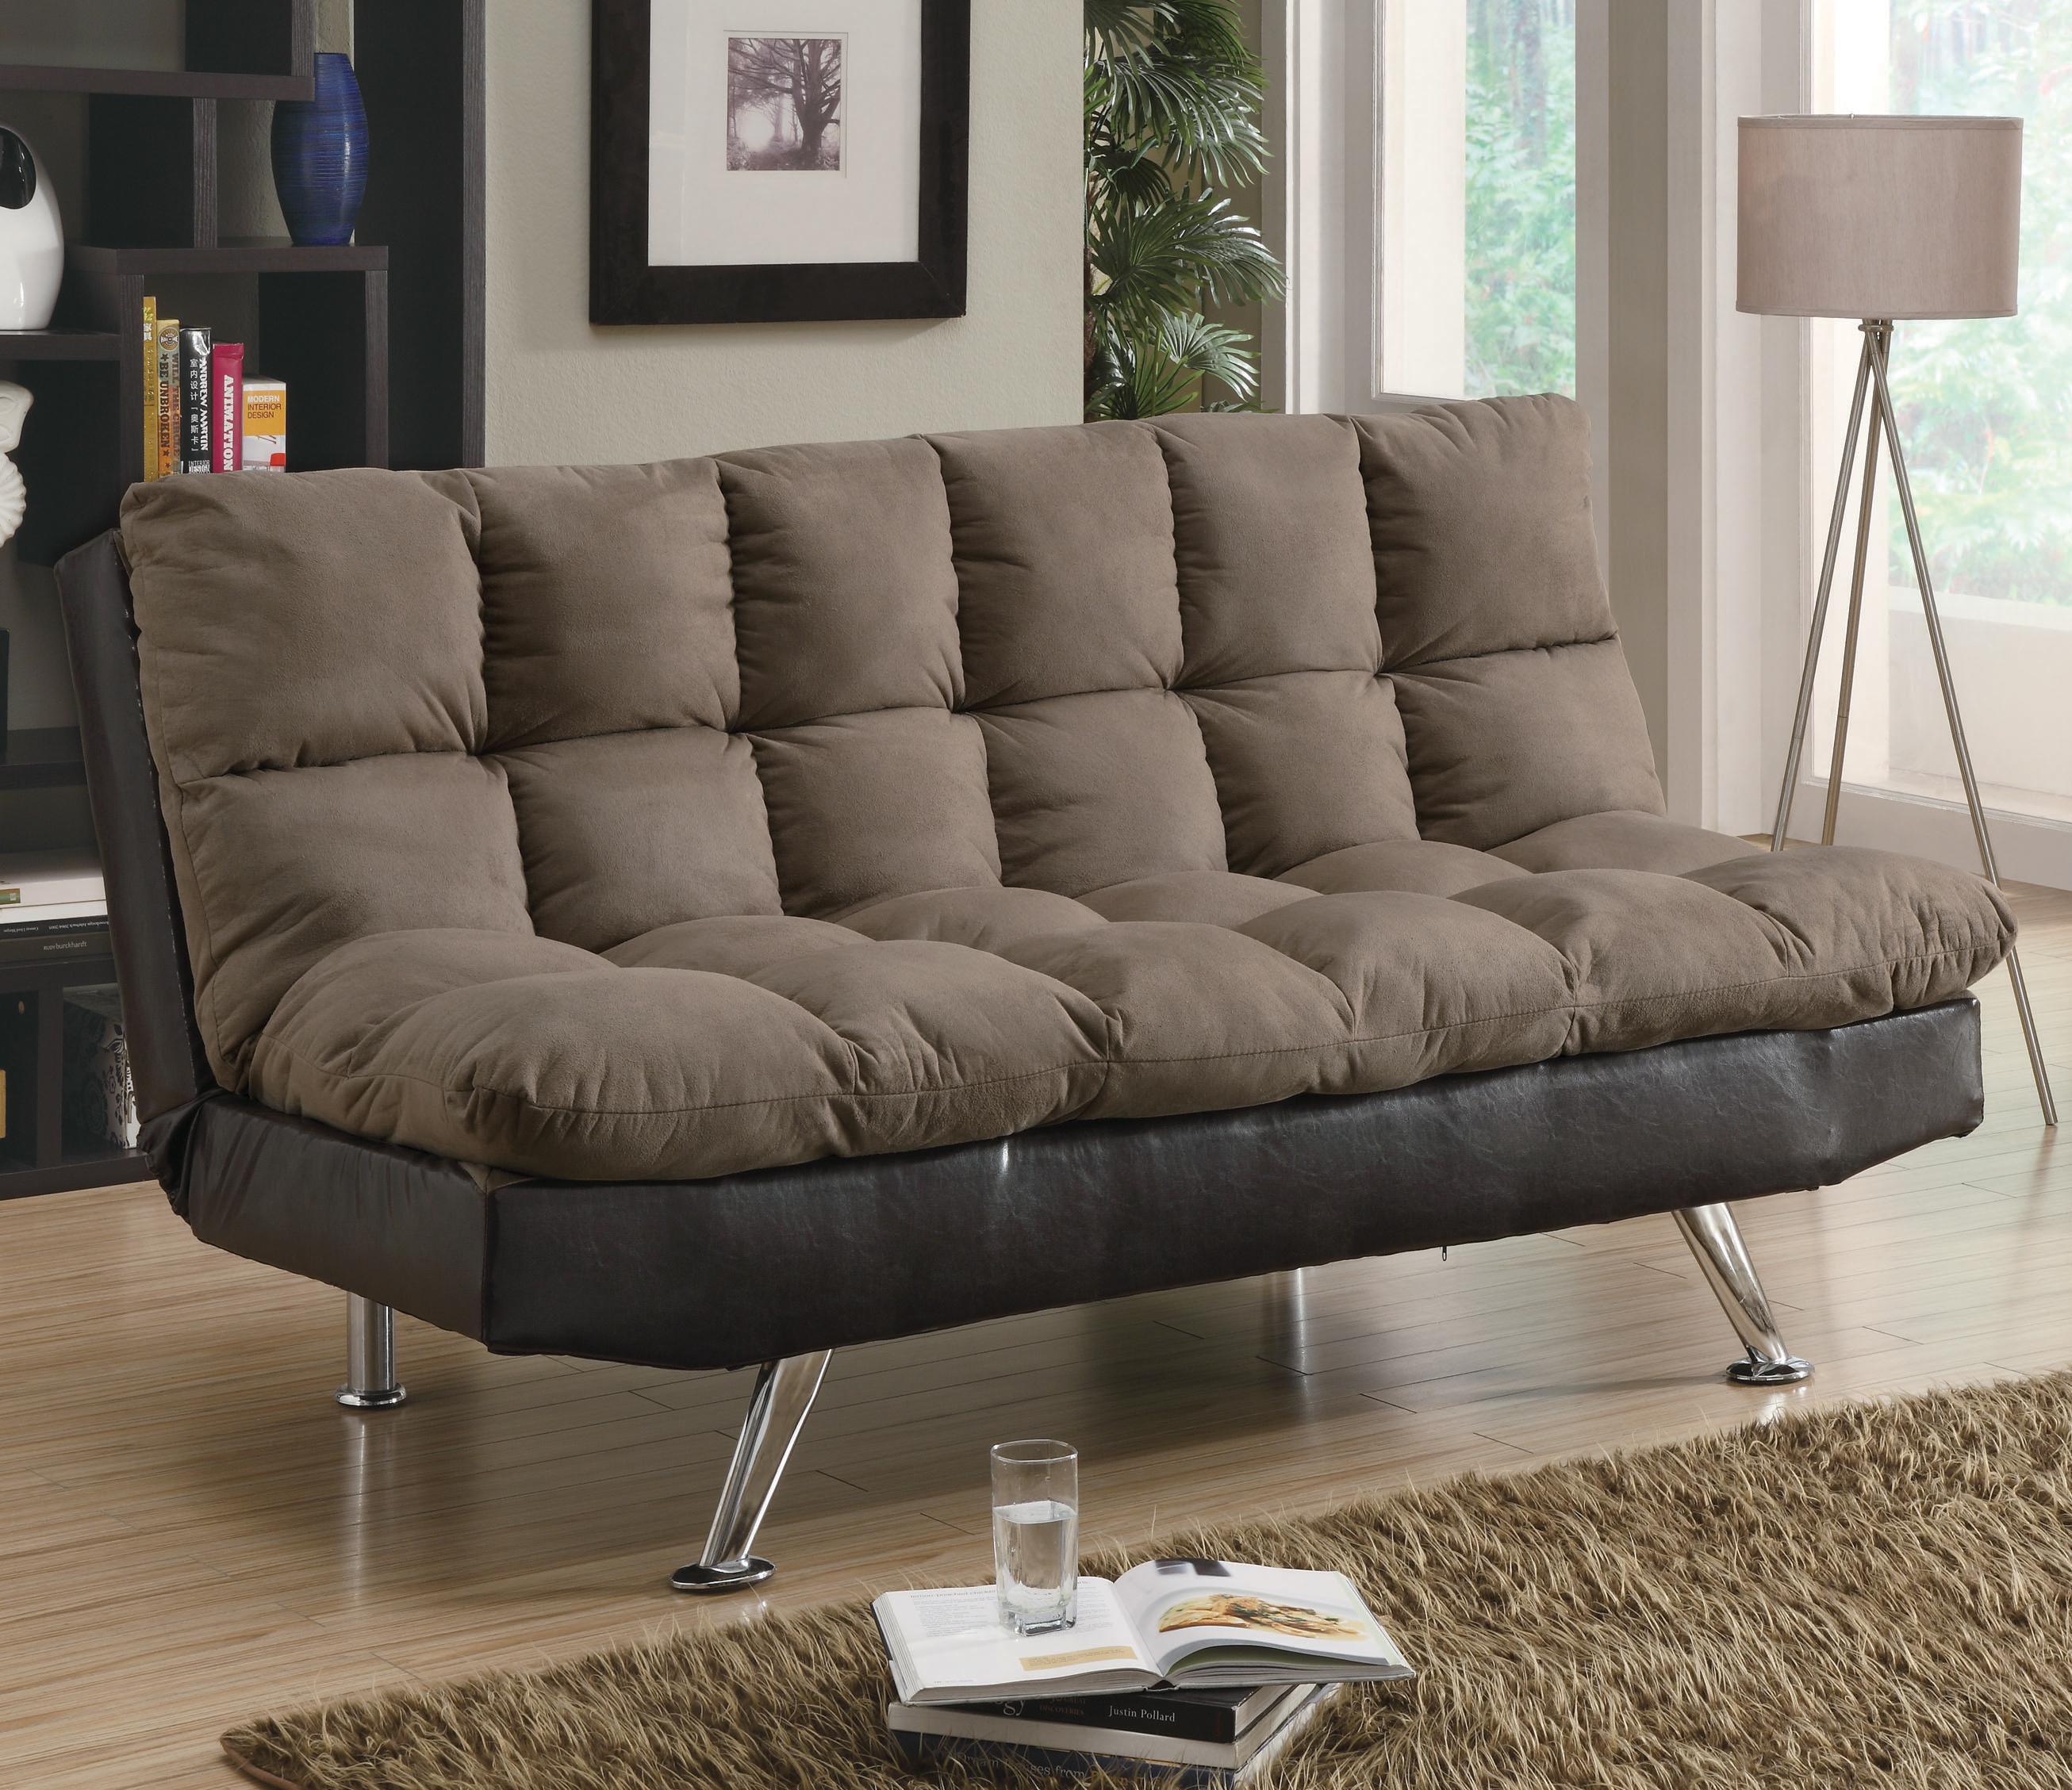 Coaster Sofa Beds and Futons -  Sofa Bed - Item Number: 300306